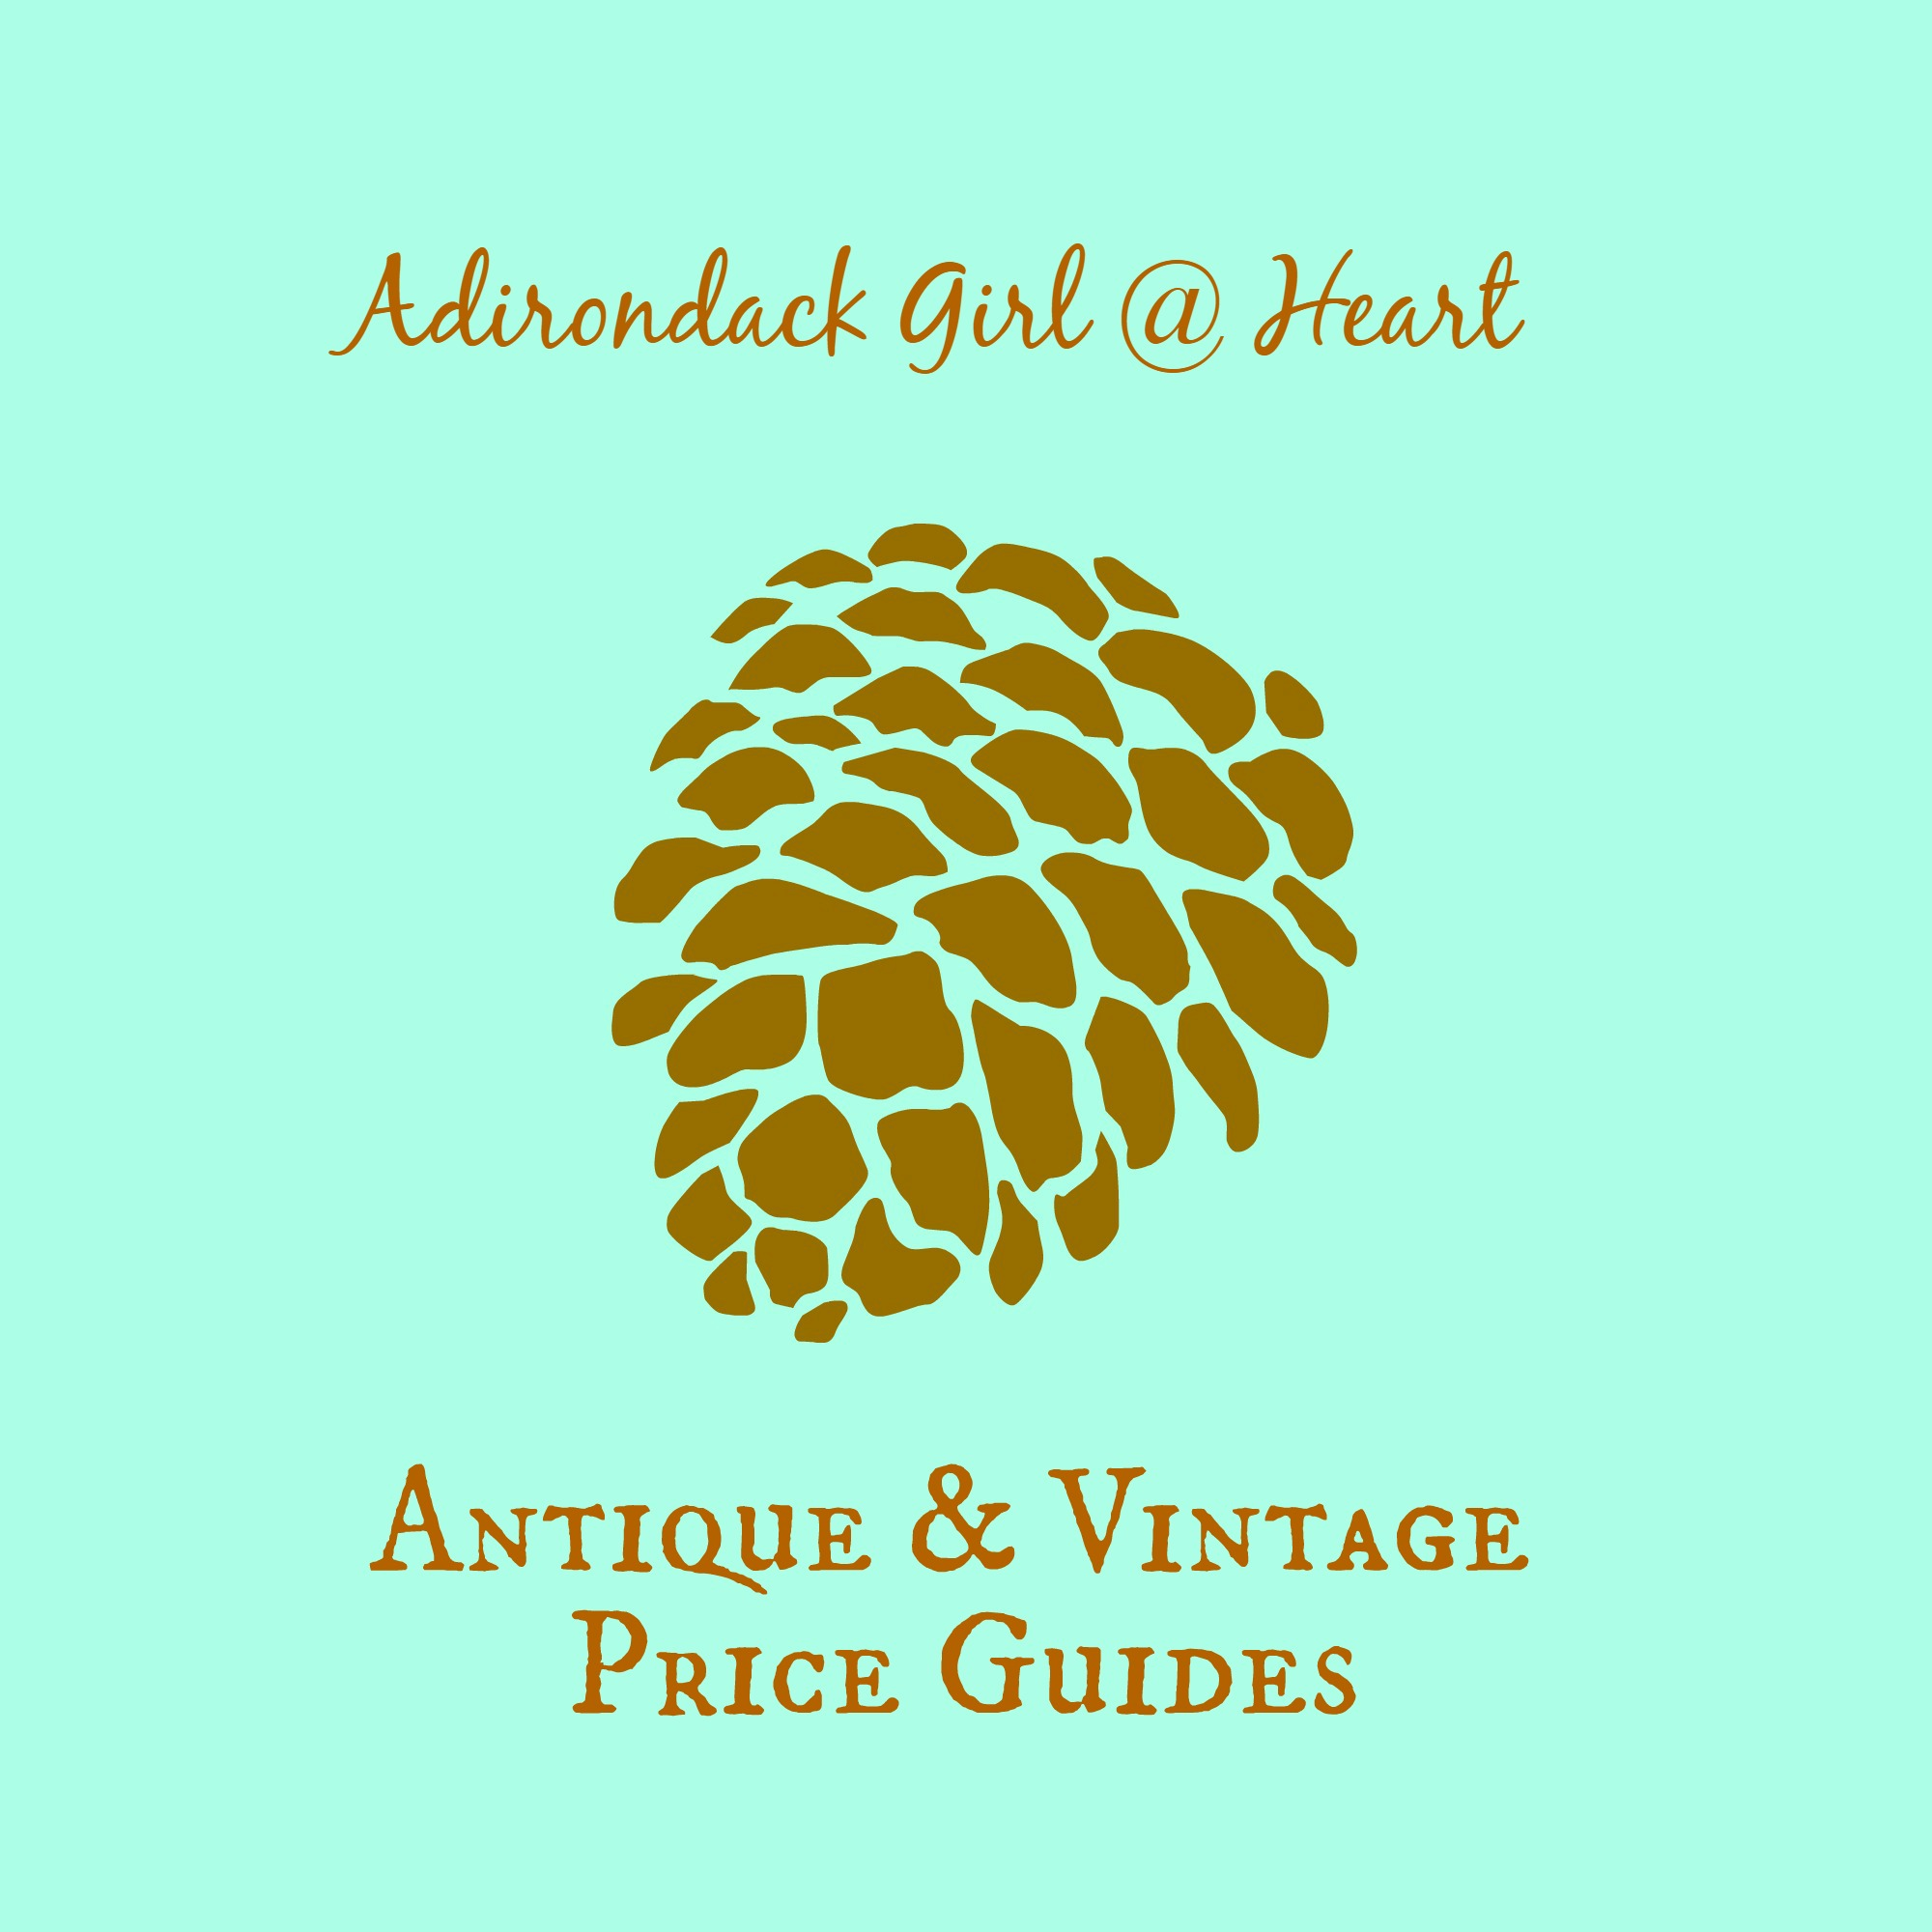 Adirondack Girl @ Heart Price Guides